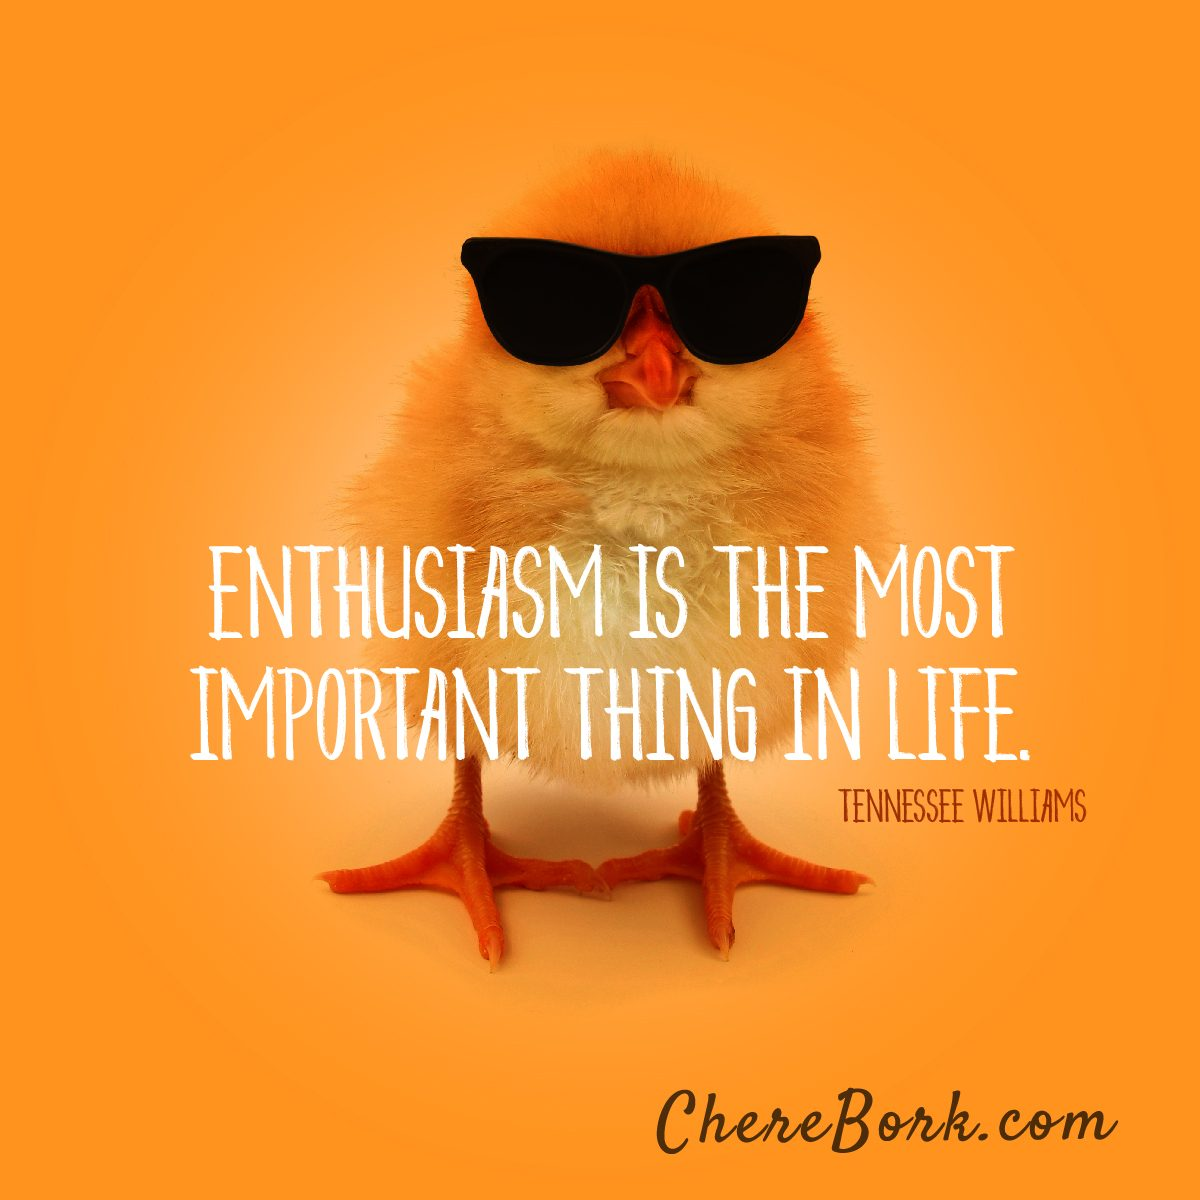 Enthusiasm is the most important thing in life. -Tennessee Williams